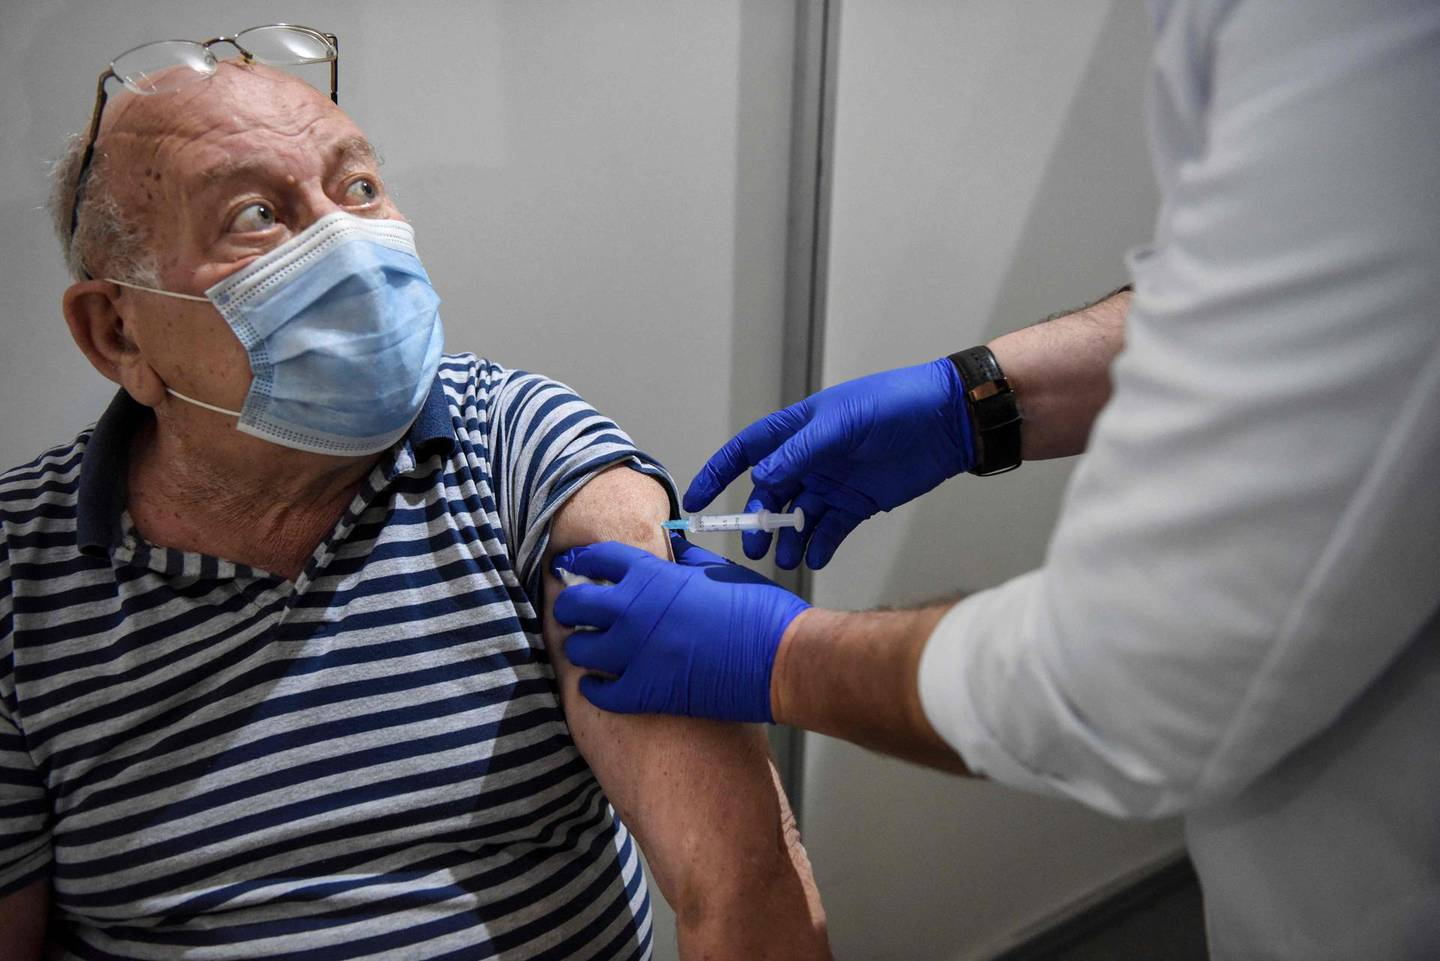 An elderly man receives a dose of the Sputnik V vaccine against the Covid-19 at the Boris Trajkovski sports hall in Skopje as the country start its vaccination campaign, after months of difficulties on April 16, 2021. Moscow announced on April 14, 2021 the start of production of its Sputnik V coronavirus vaccine in Serbia, the first European country outside Russia and Belarus to manufacture the vaccine. / AFP / Robert ATANASOVSKI